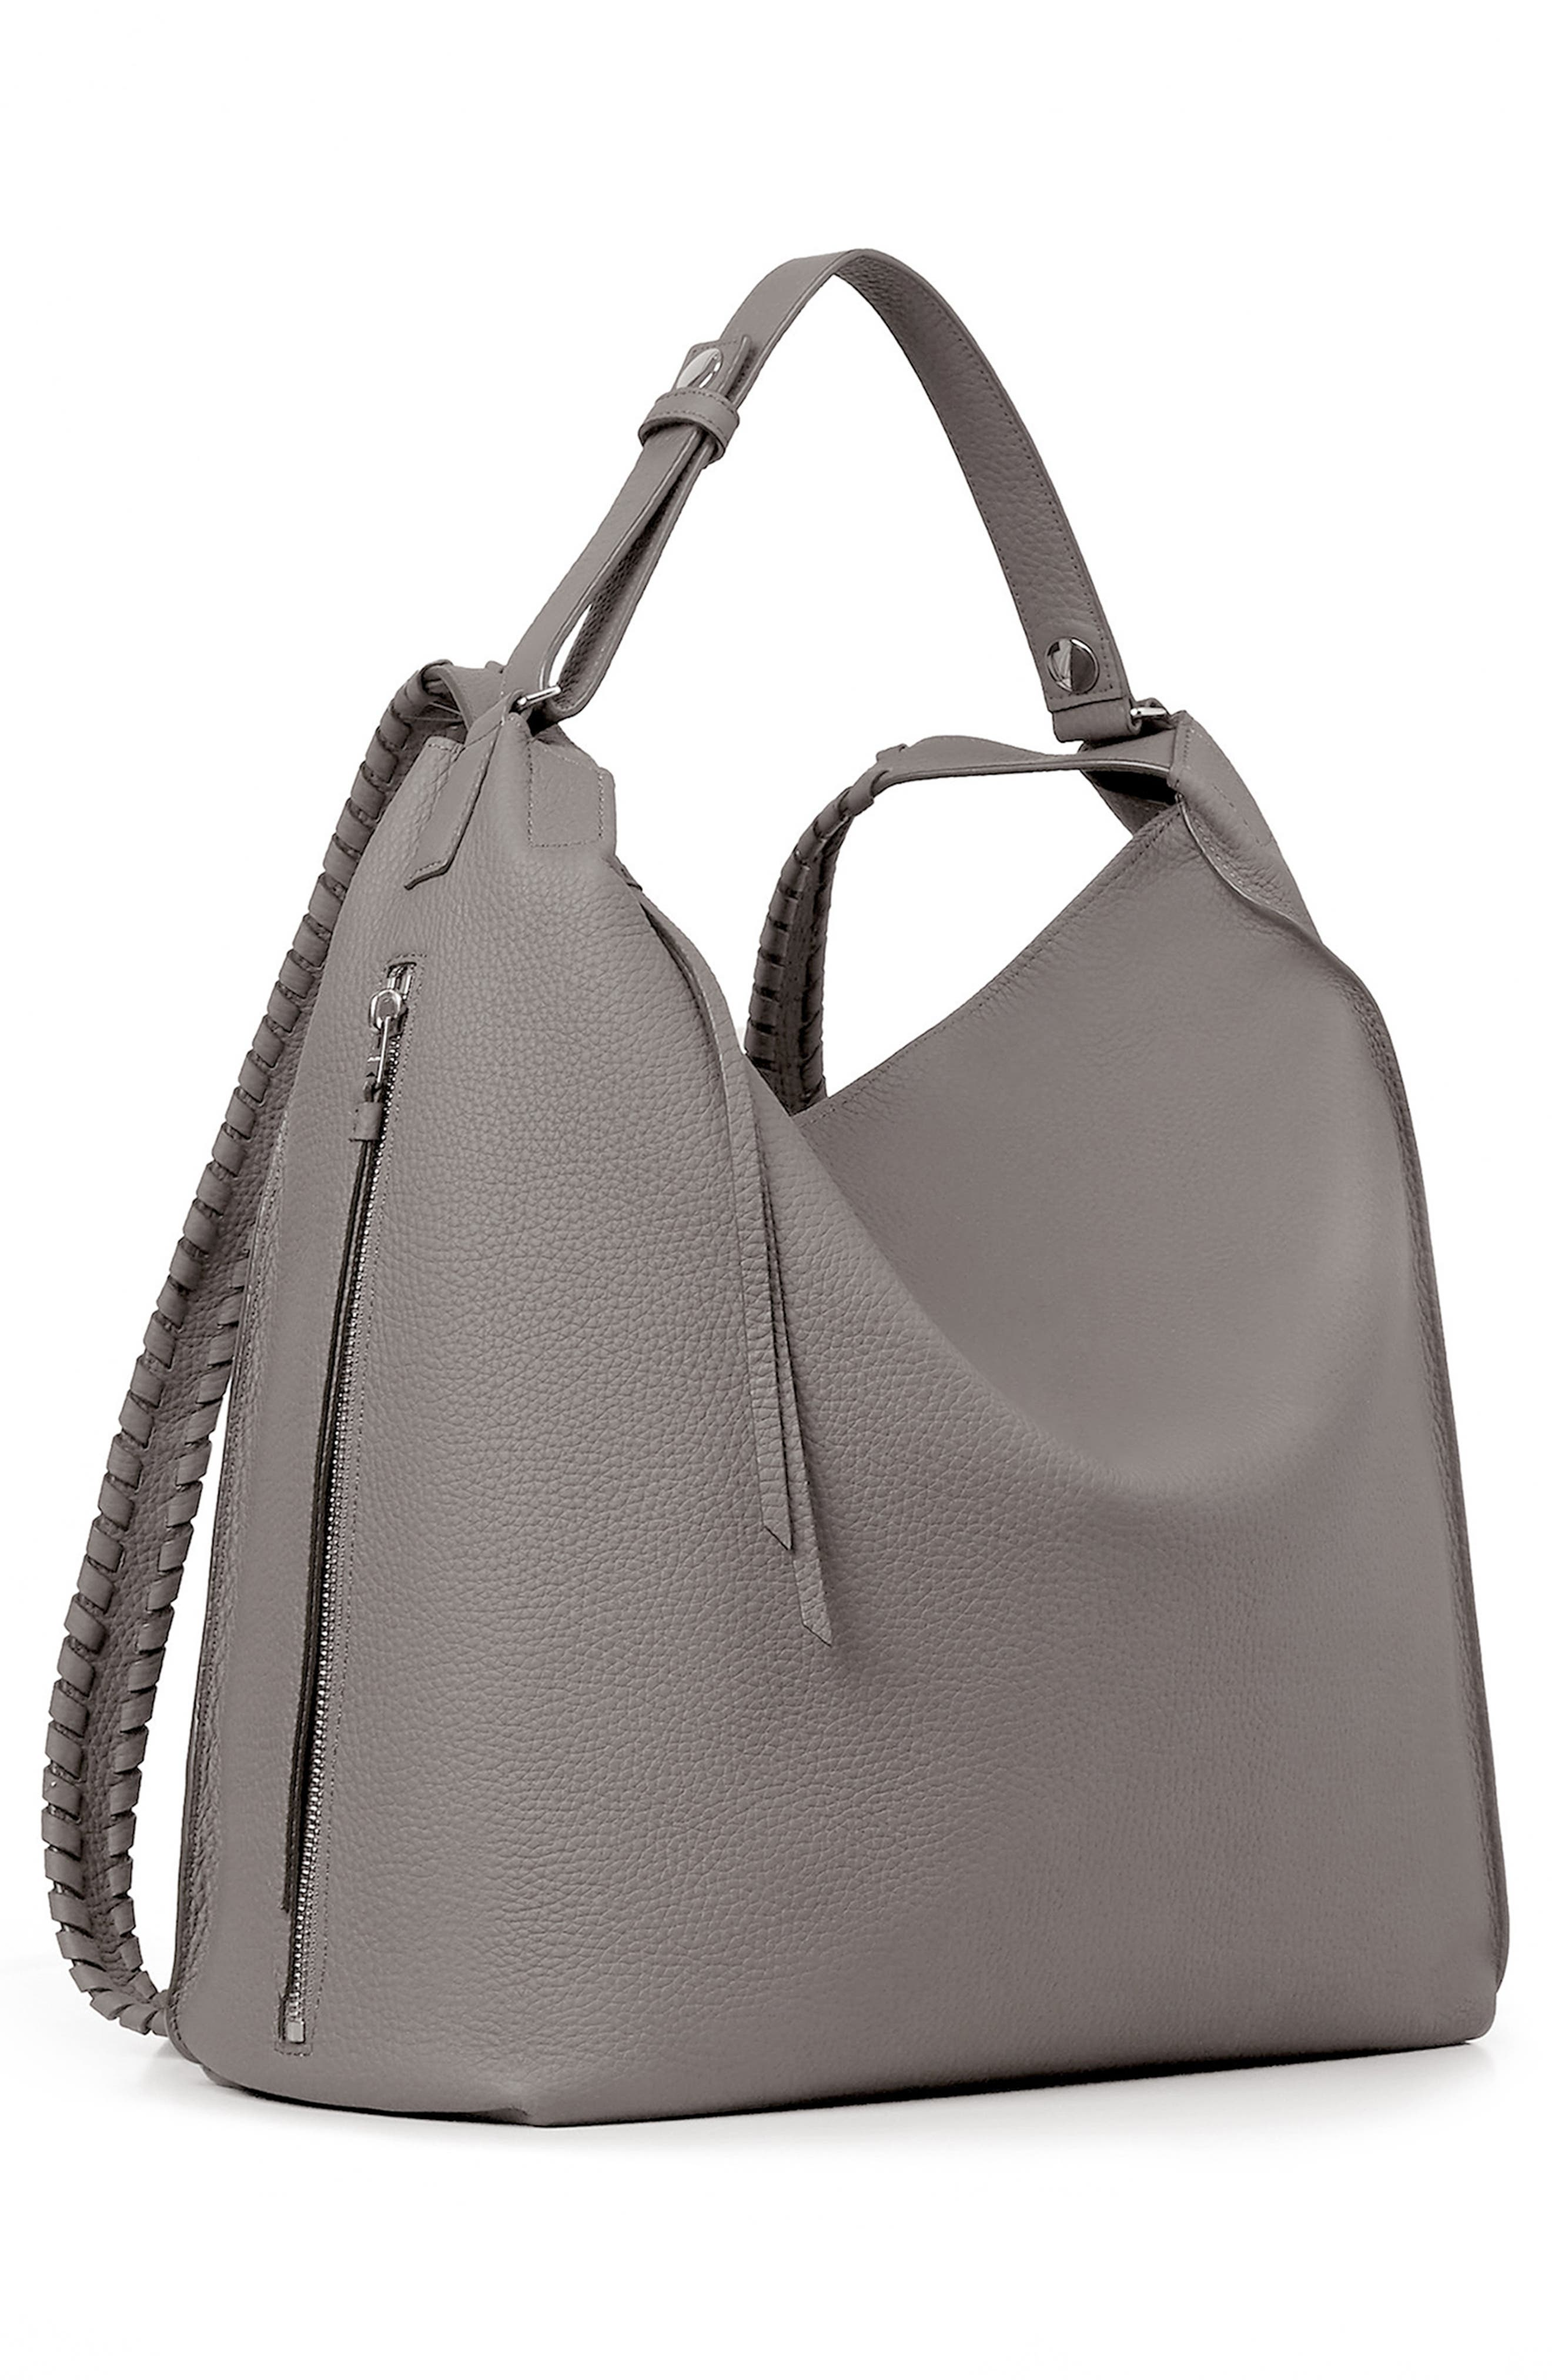 Kita Convertible Leather Backpack,                             Alternate thumbnail 3, color,                             STORM GREY